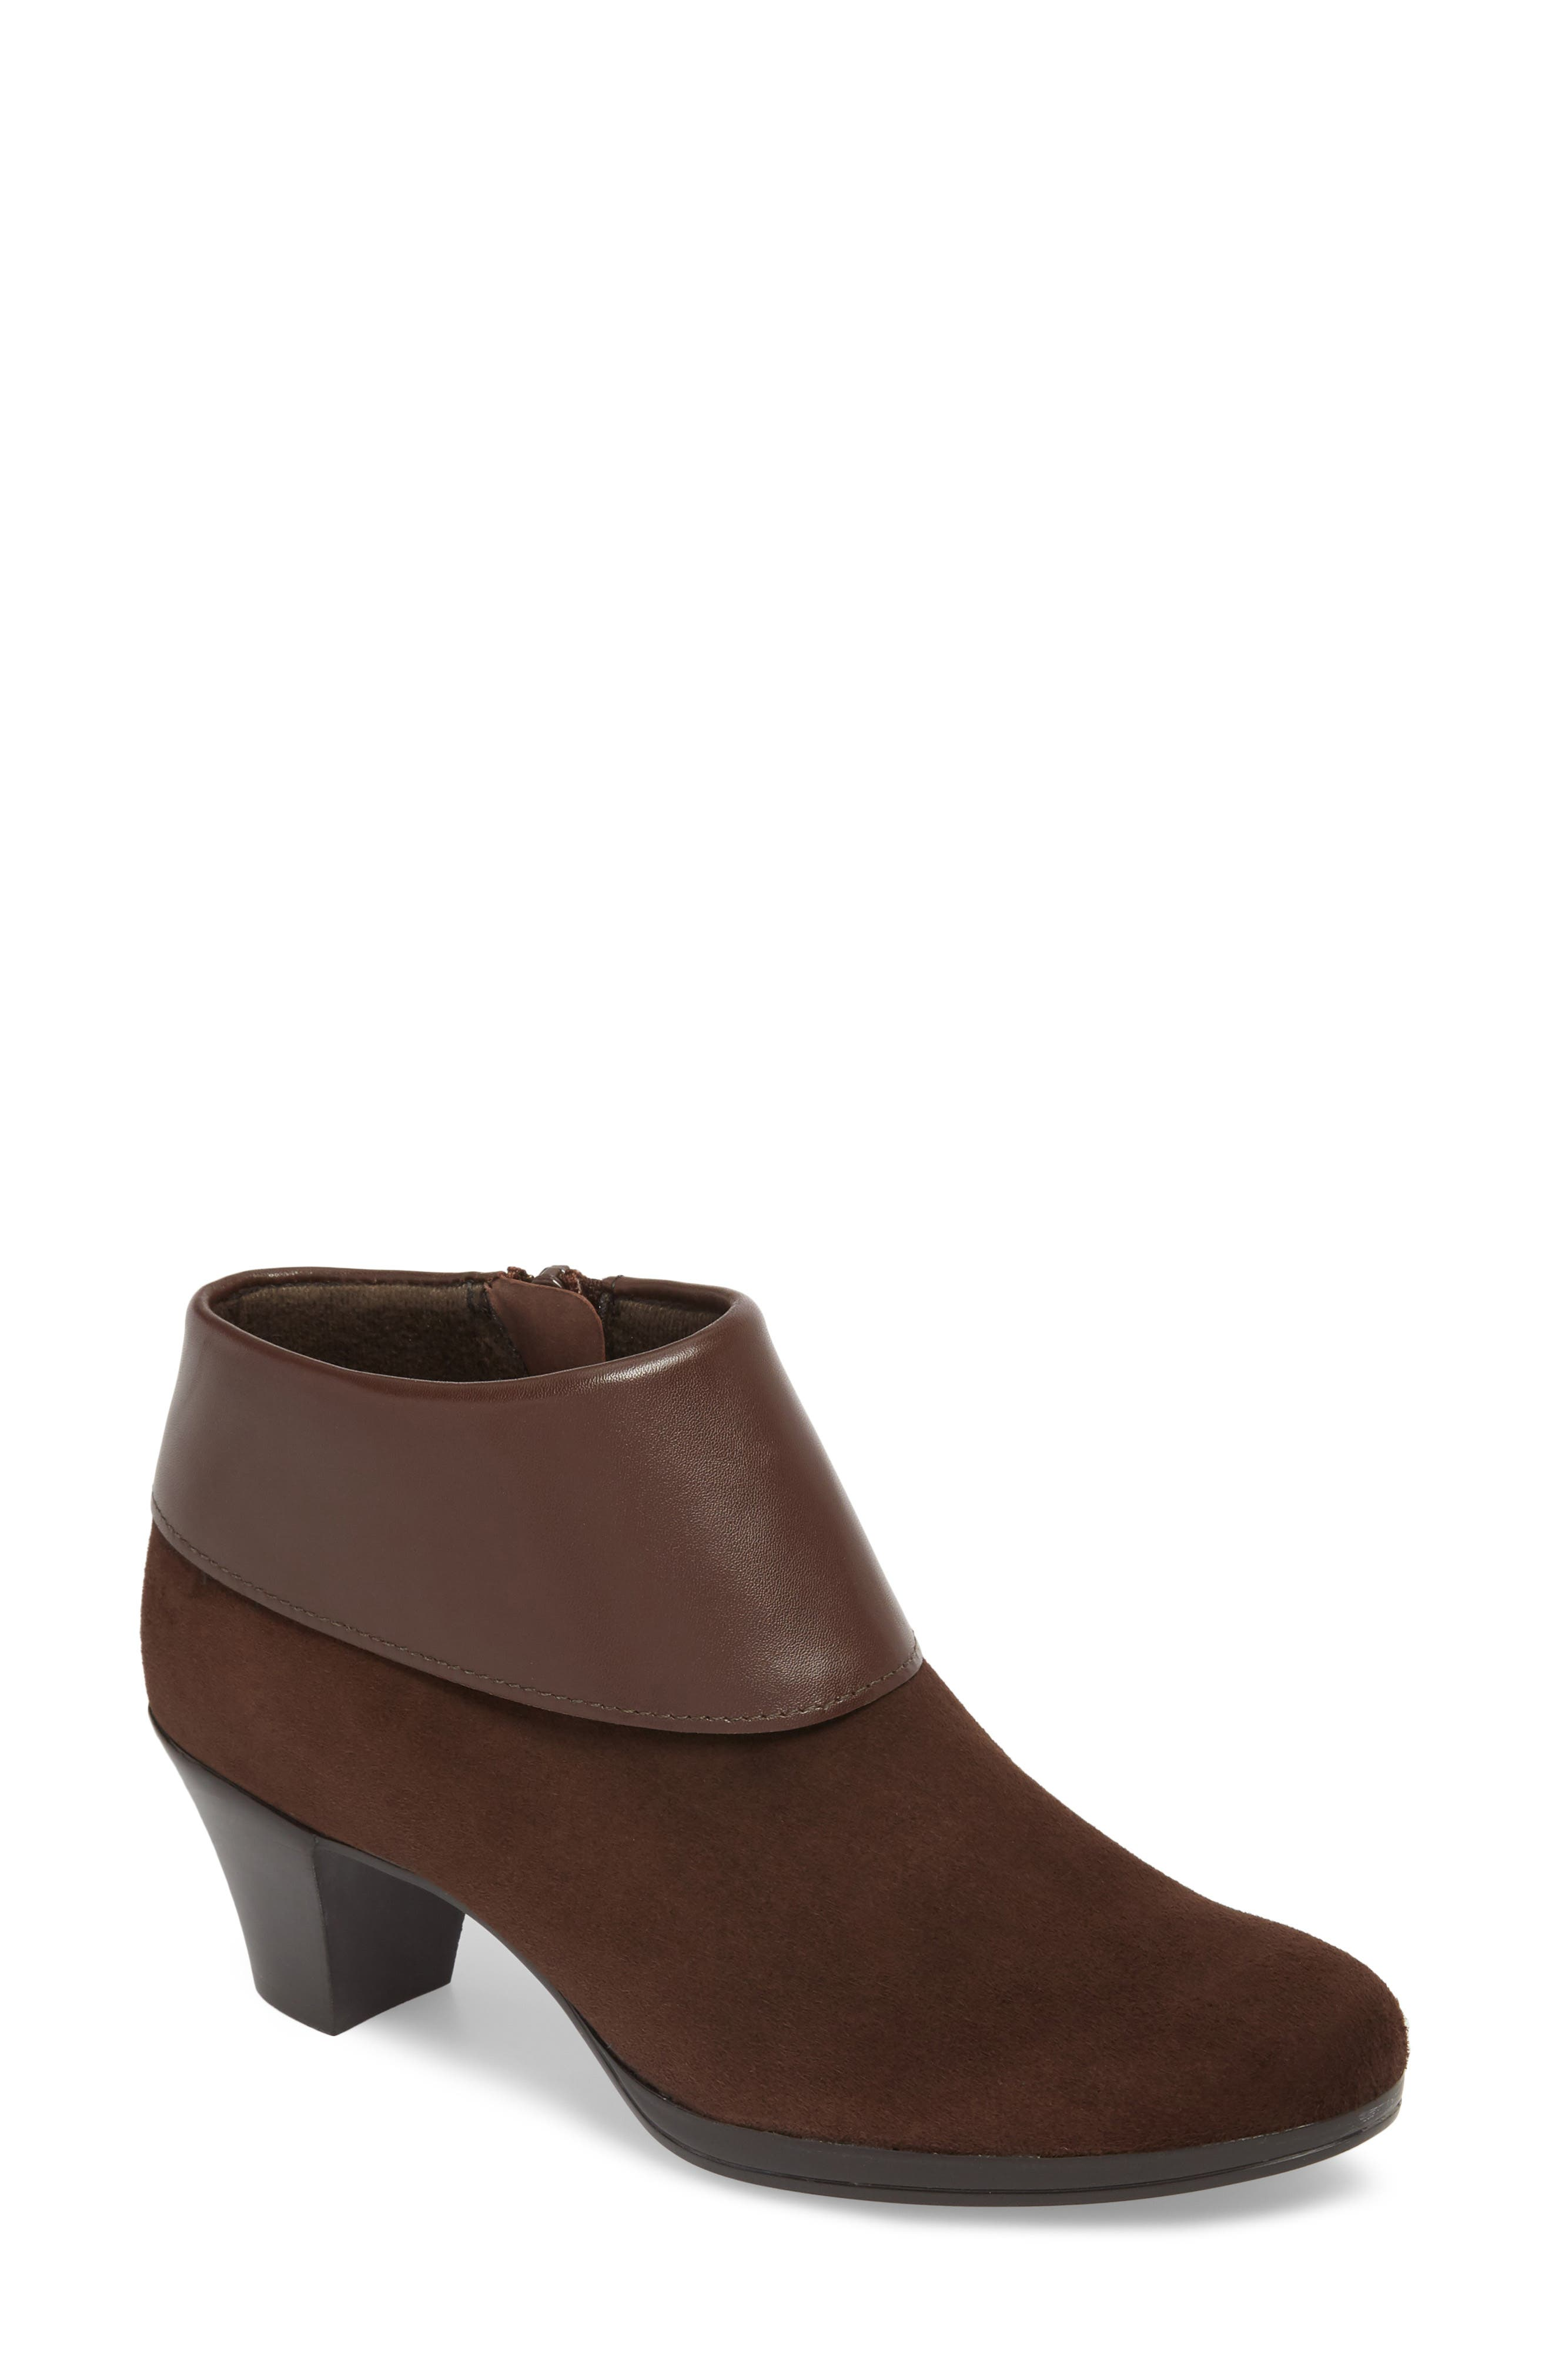 MUNRO Gracee Boot, Main, color, CHOCOLATE LEATHER